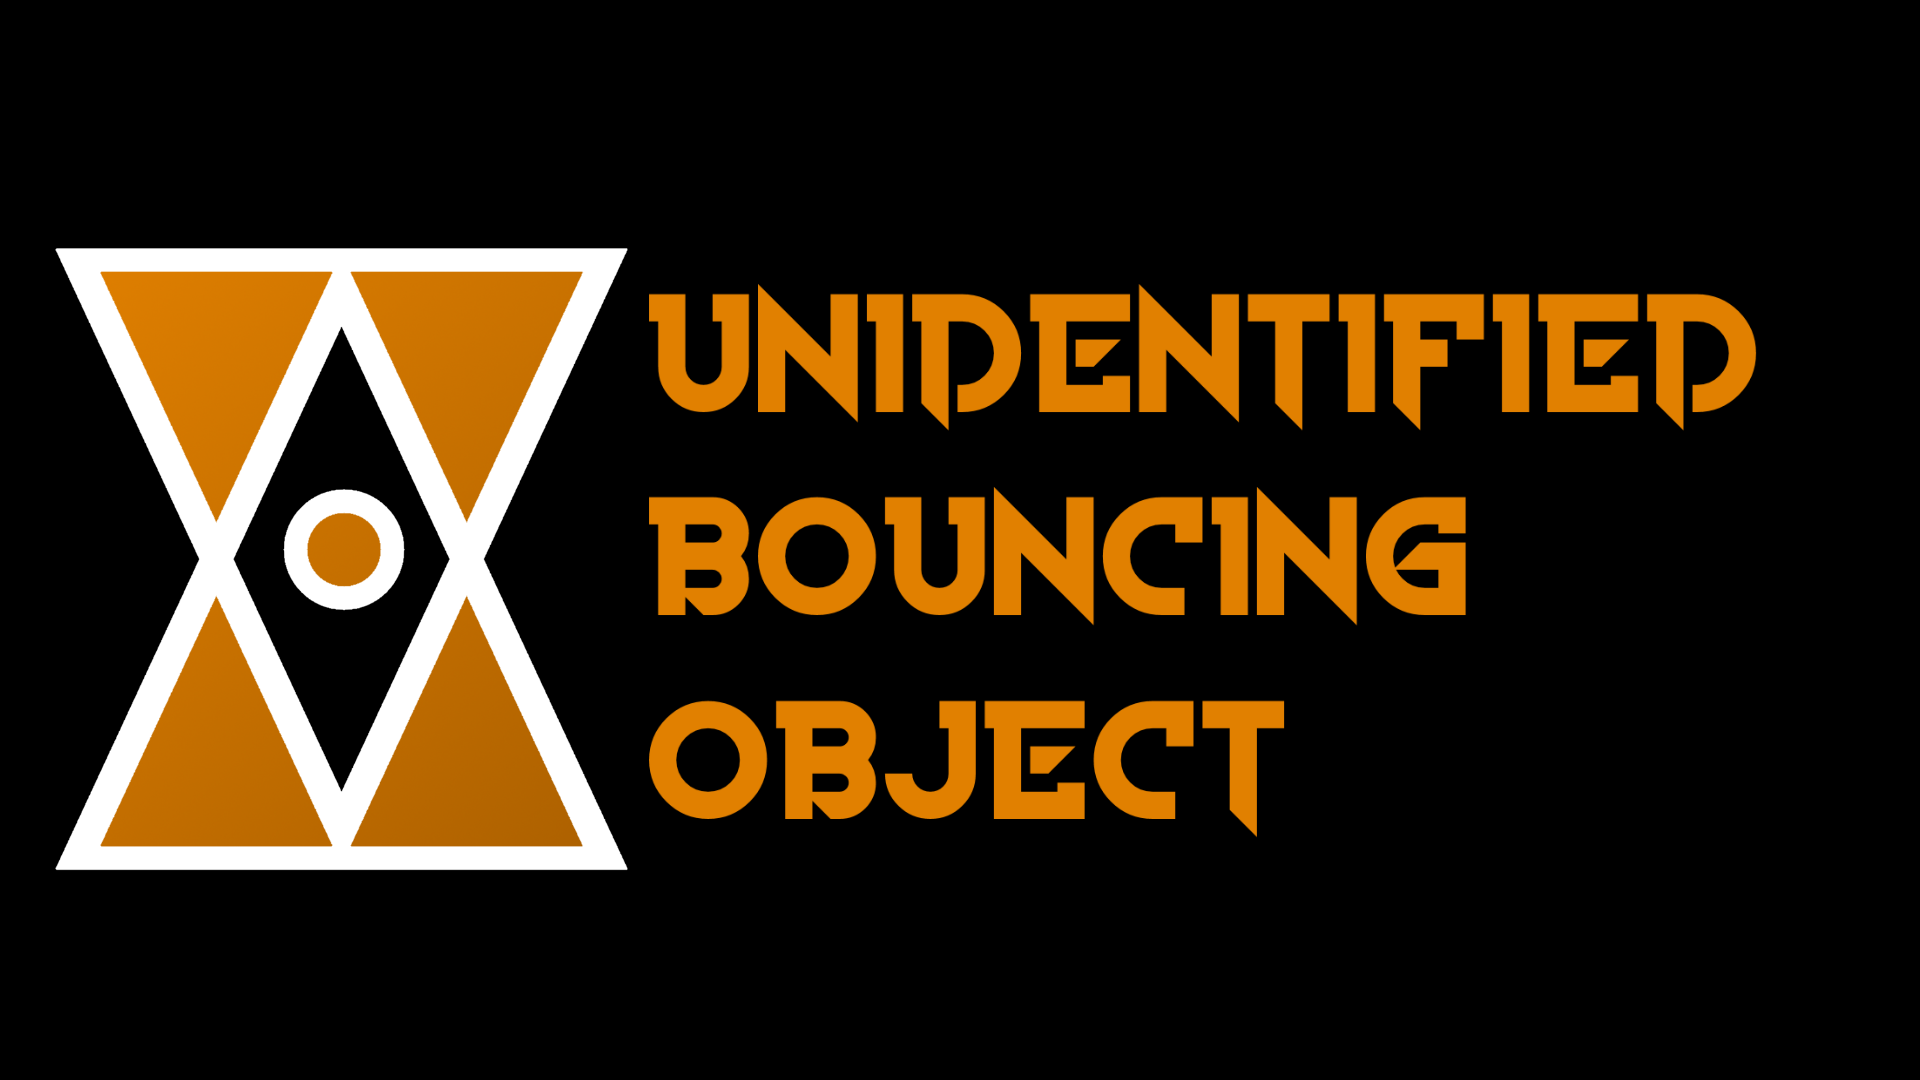 Unidentified Bouncing Object